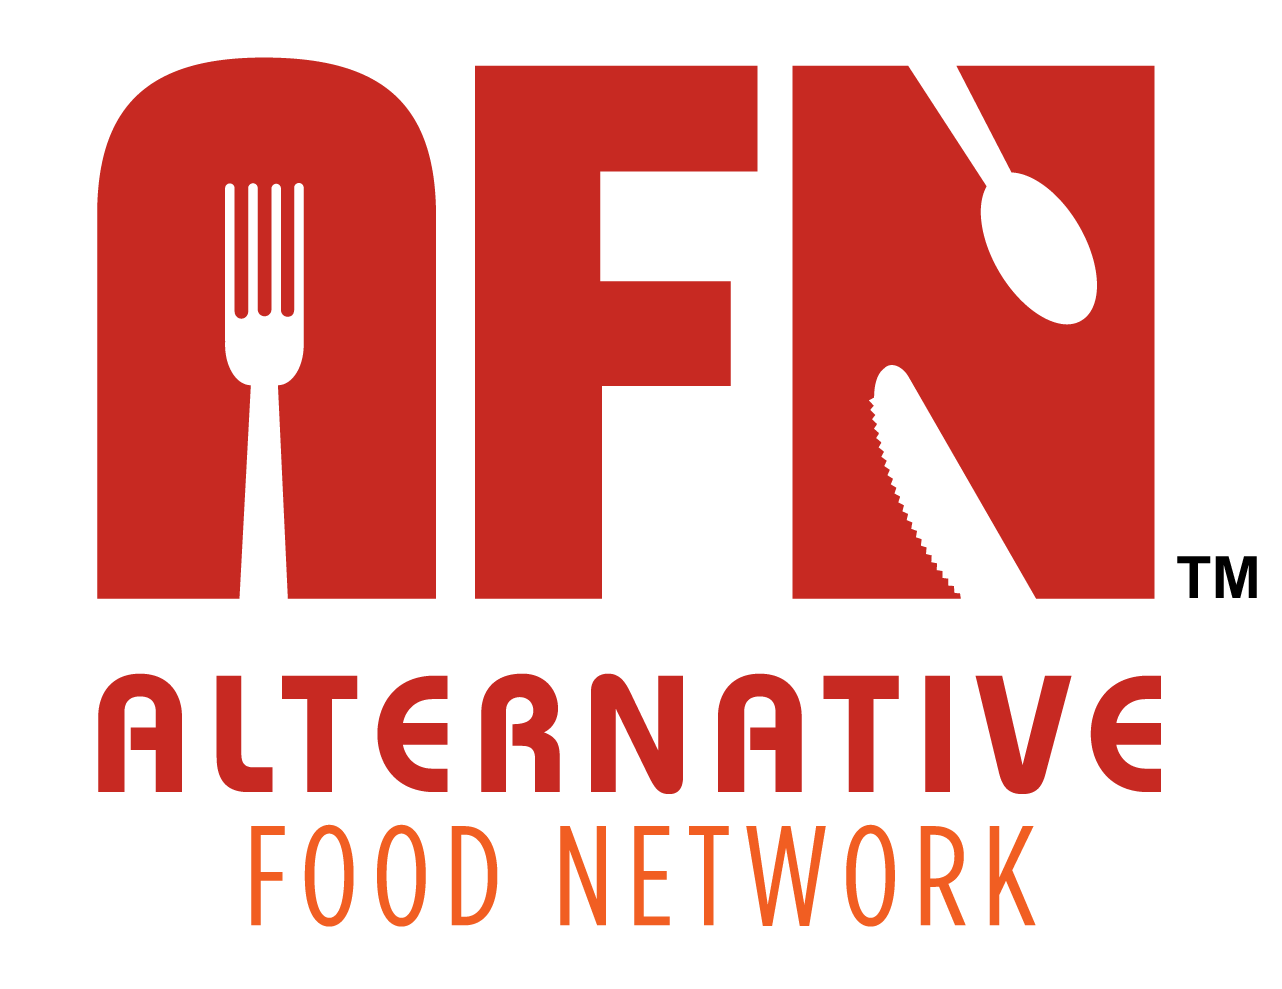 Alternative Food Network